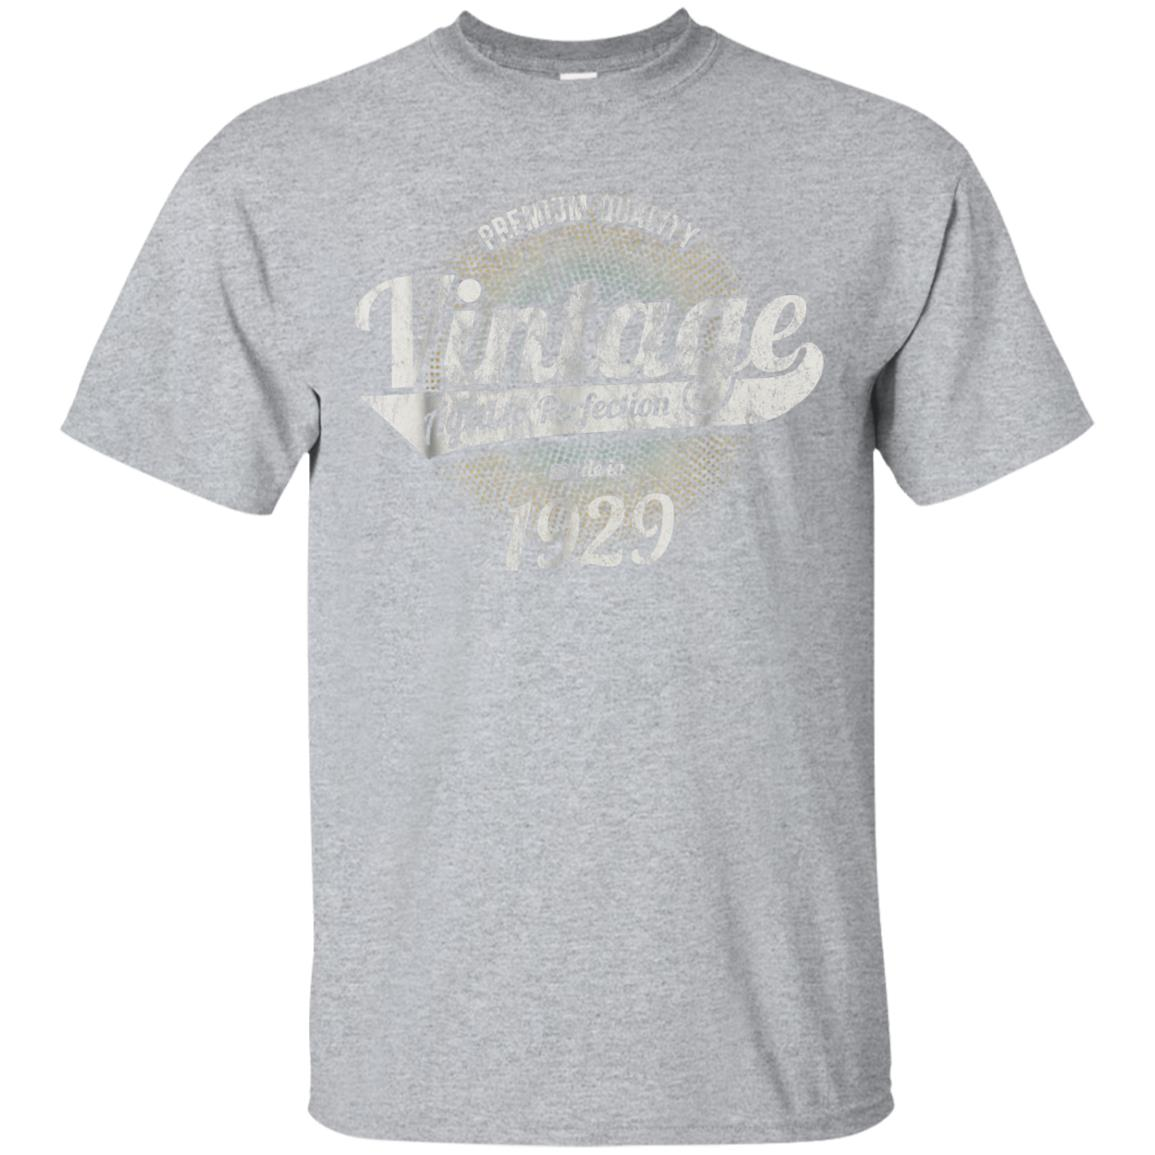 Vintage Est 1929 T-Shirt 89 Years Old 89th Birthday Gift 99promocode